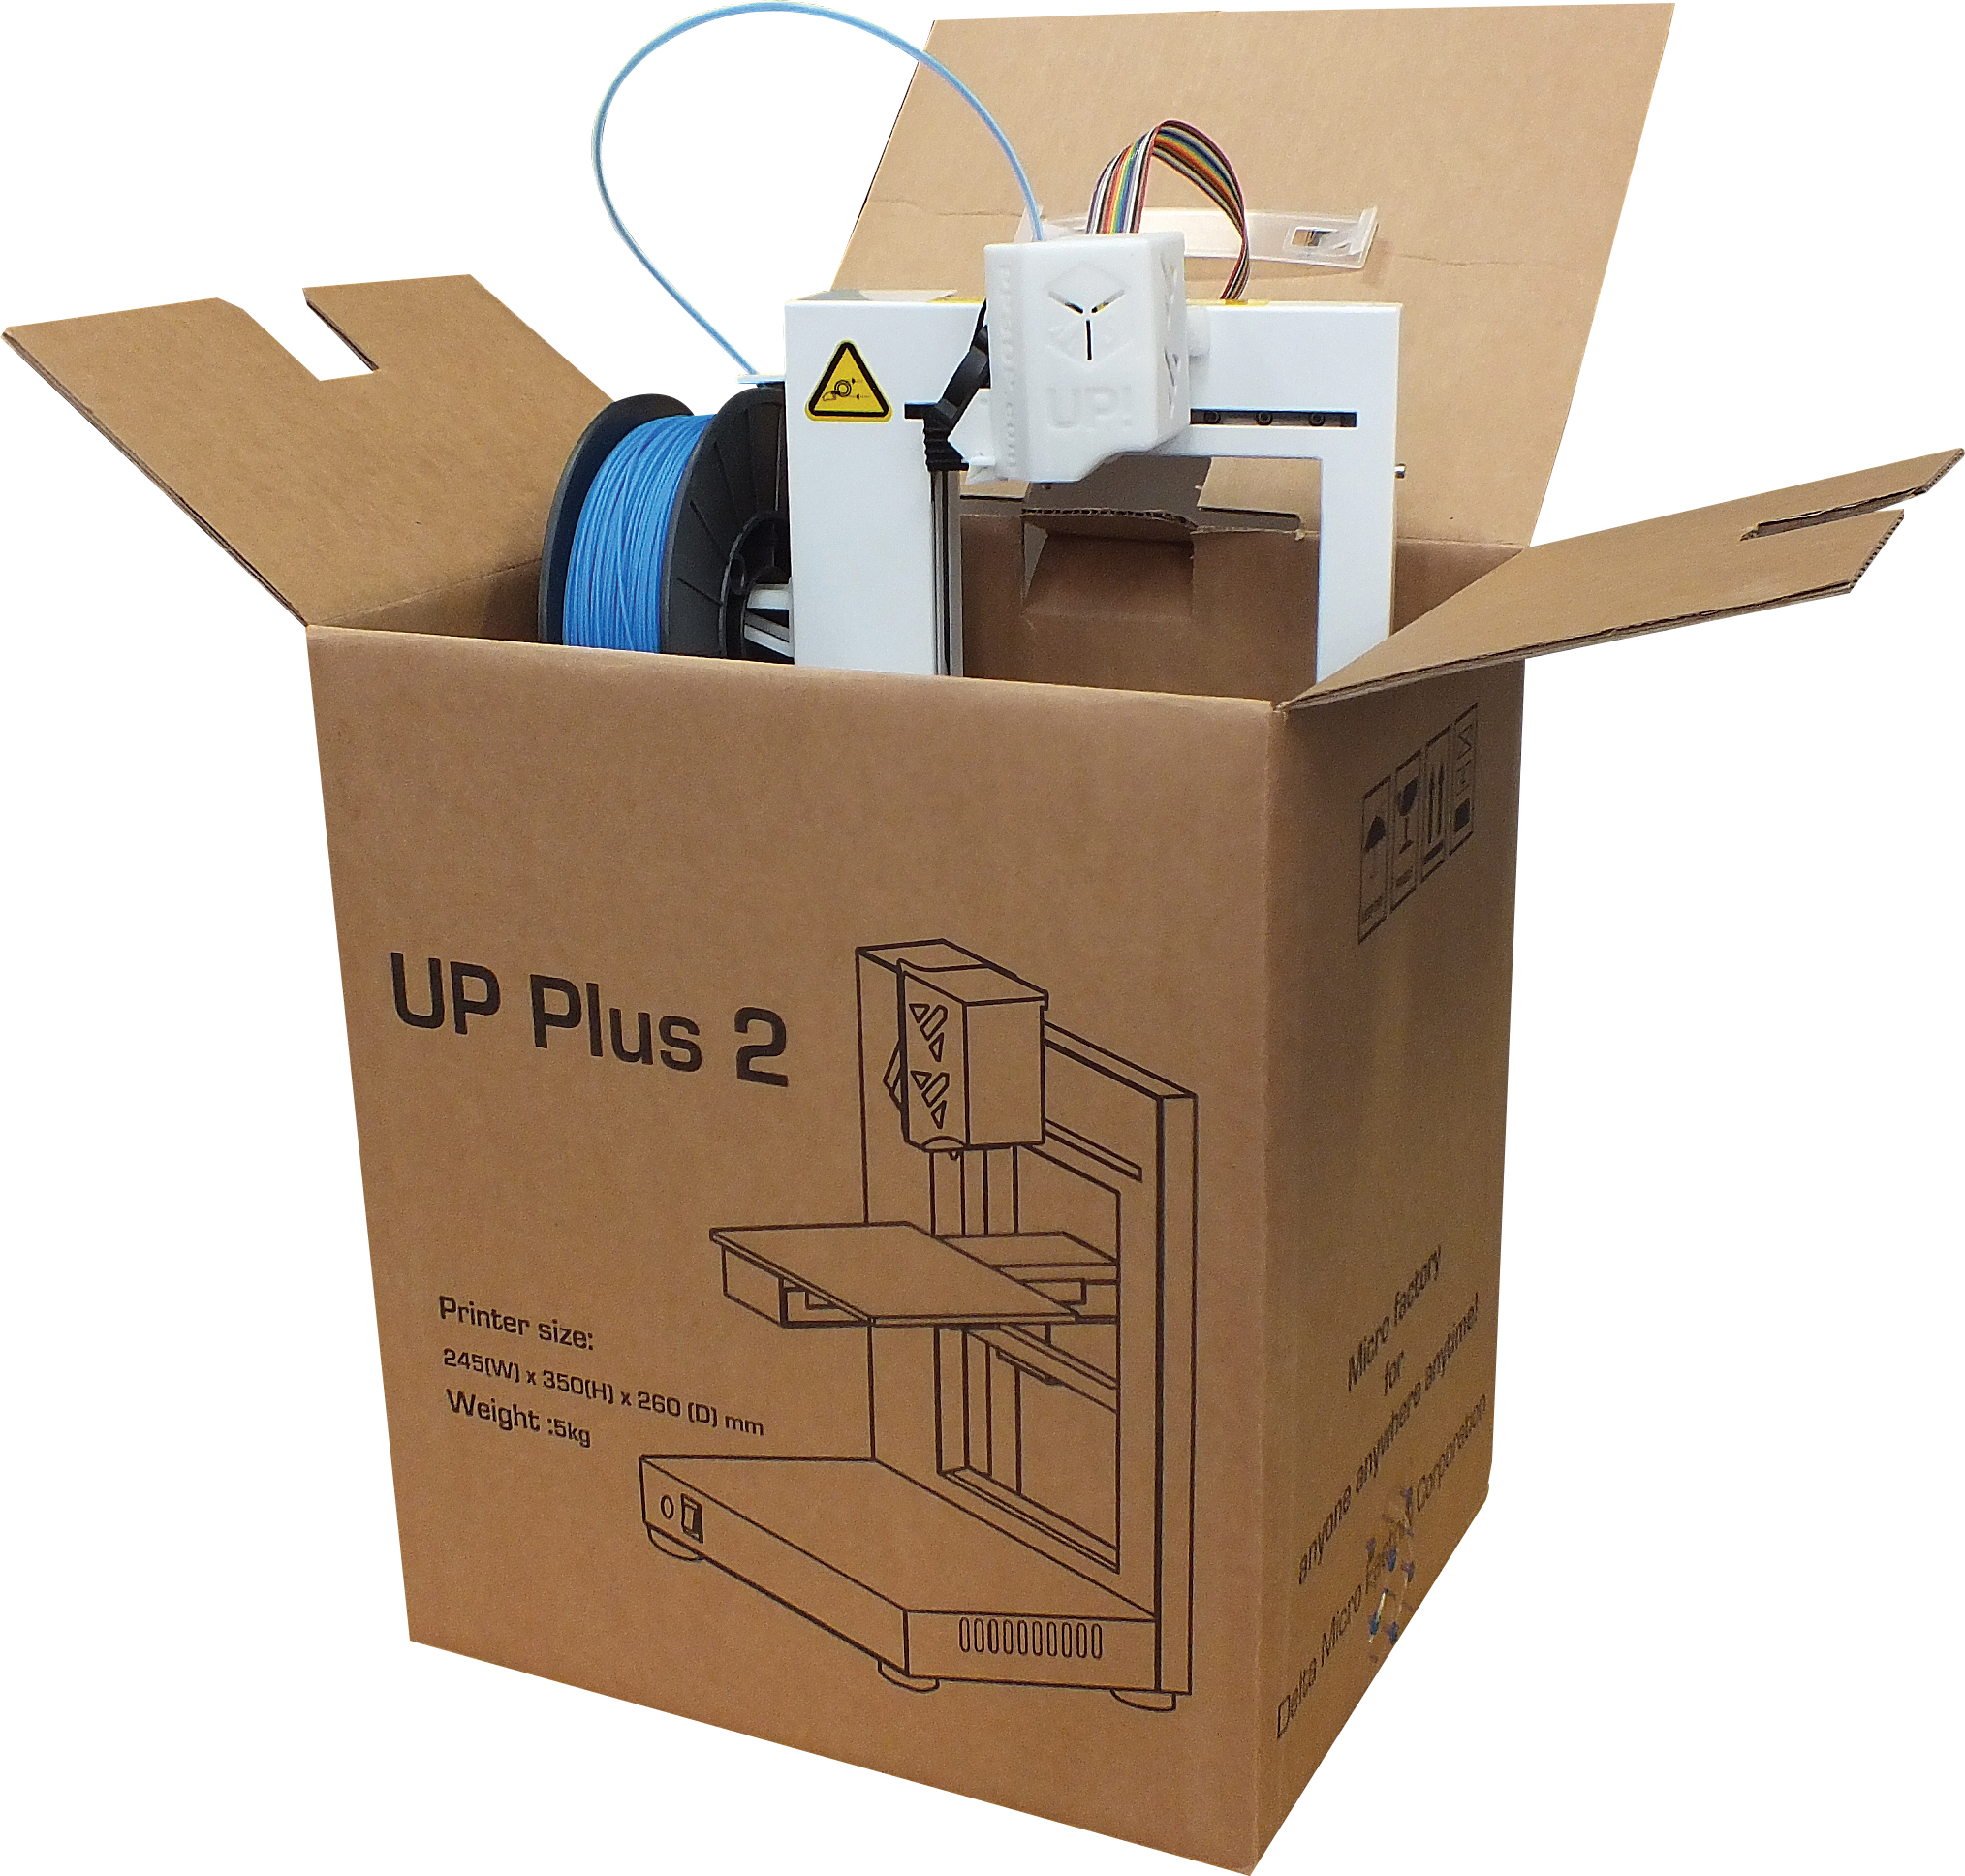 UP! Plus 2  3D printer in box